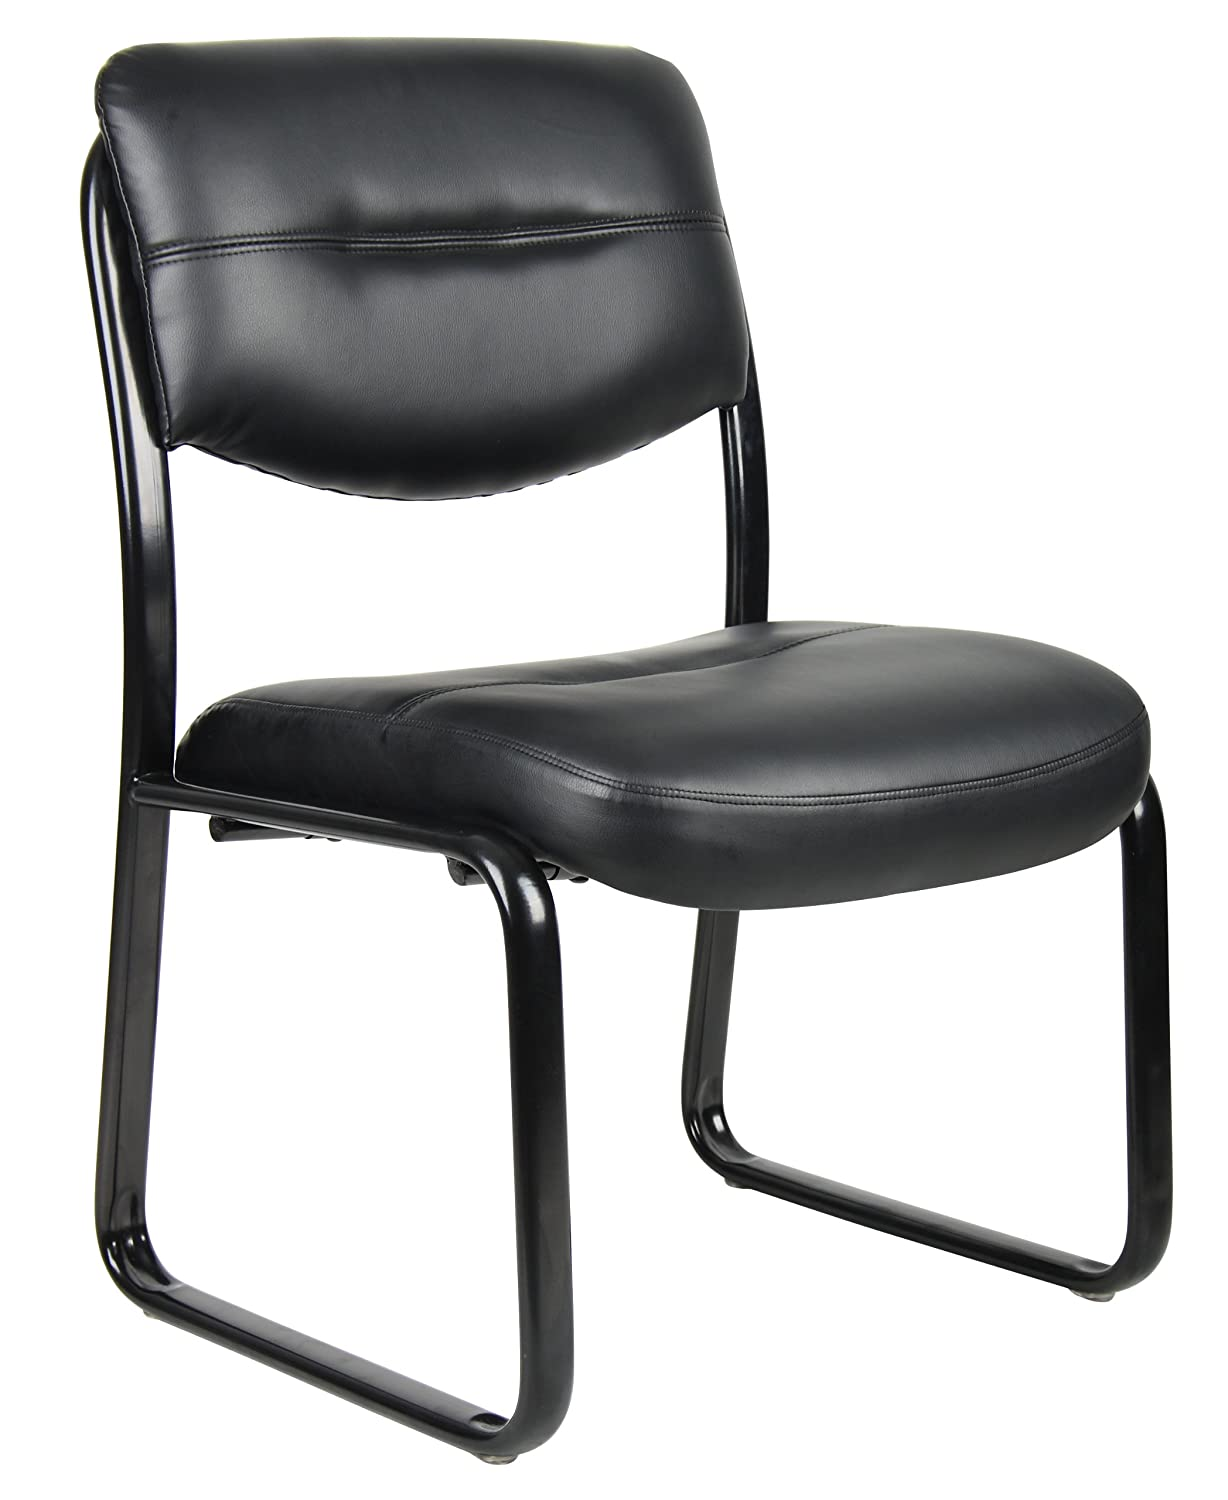 Connected waiting room chairs - Boss Office Products B9539 Leather Sled Base Side Chair In Black